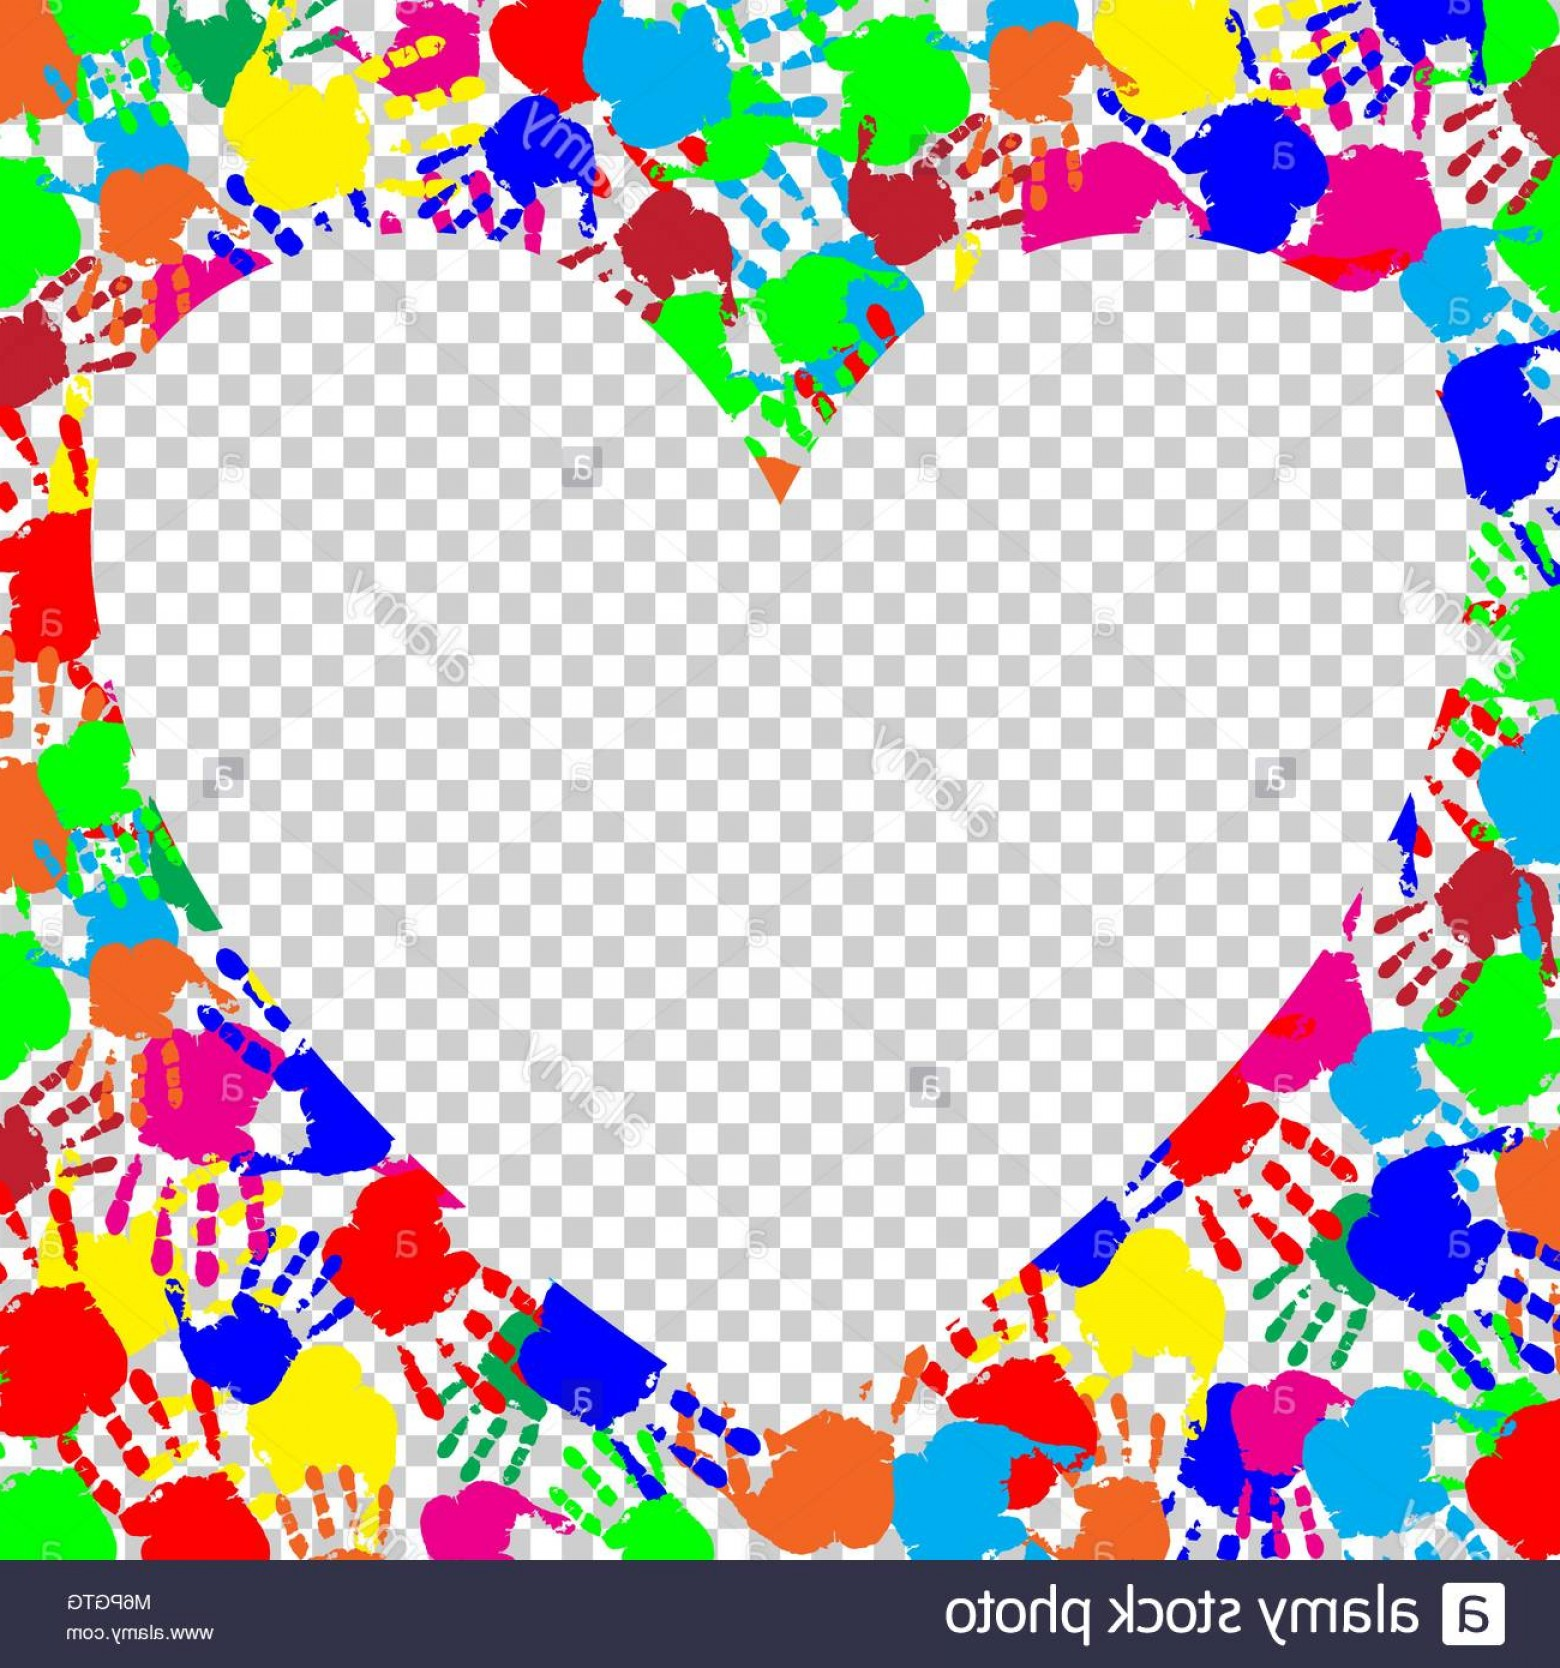 Hand Prints Vector Transparent Background: Stock Photo Bright Rainbow Heart Frame With Empty Space For Text Or Image And